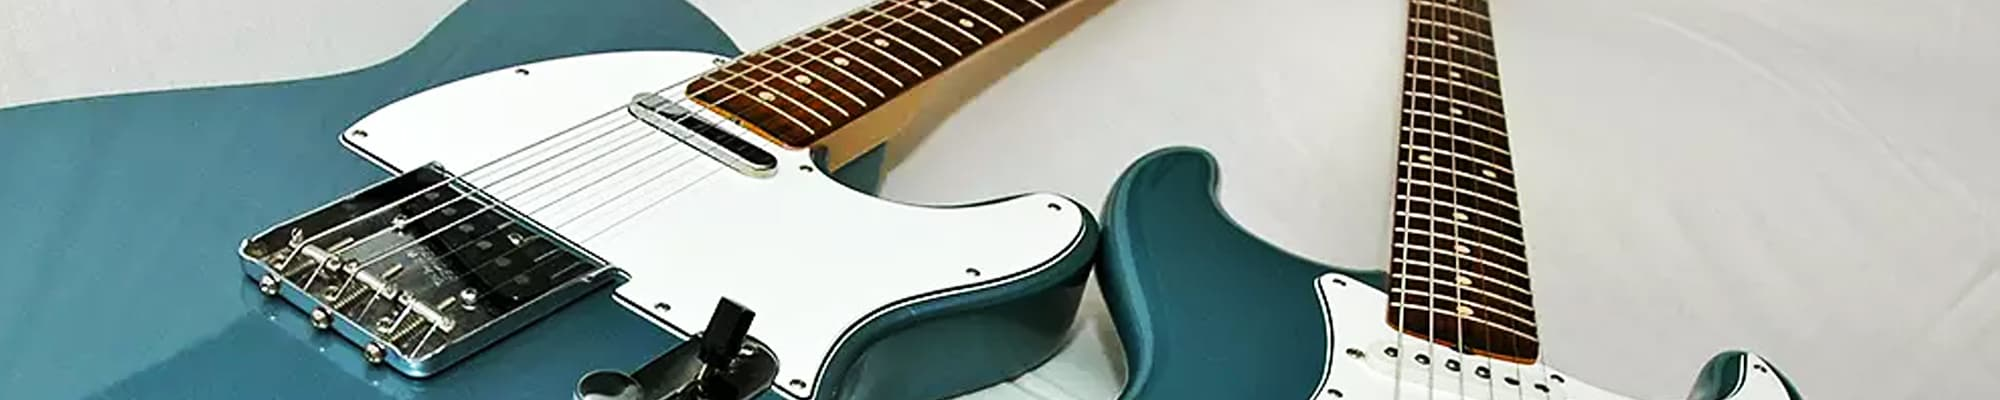 Stratocaster Vs Telecaster The Differences That Matter Reverb News 4 Way Wiring